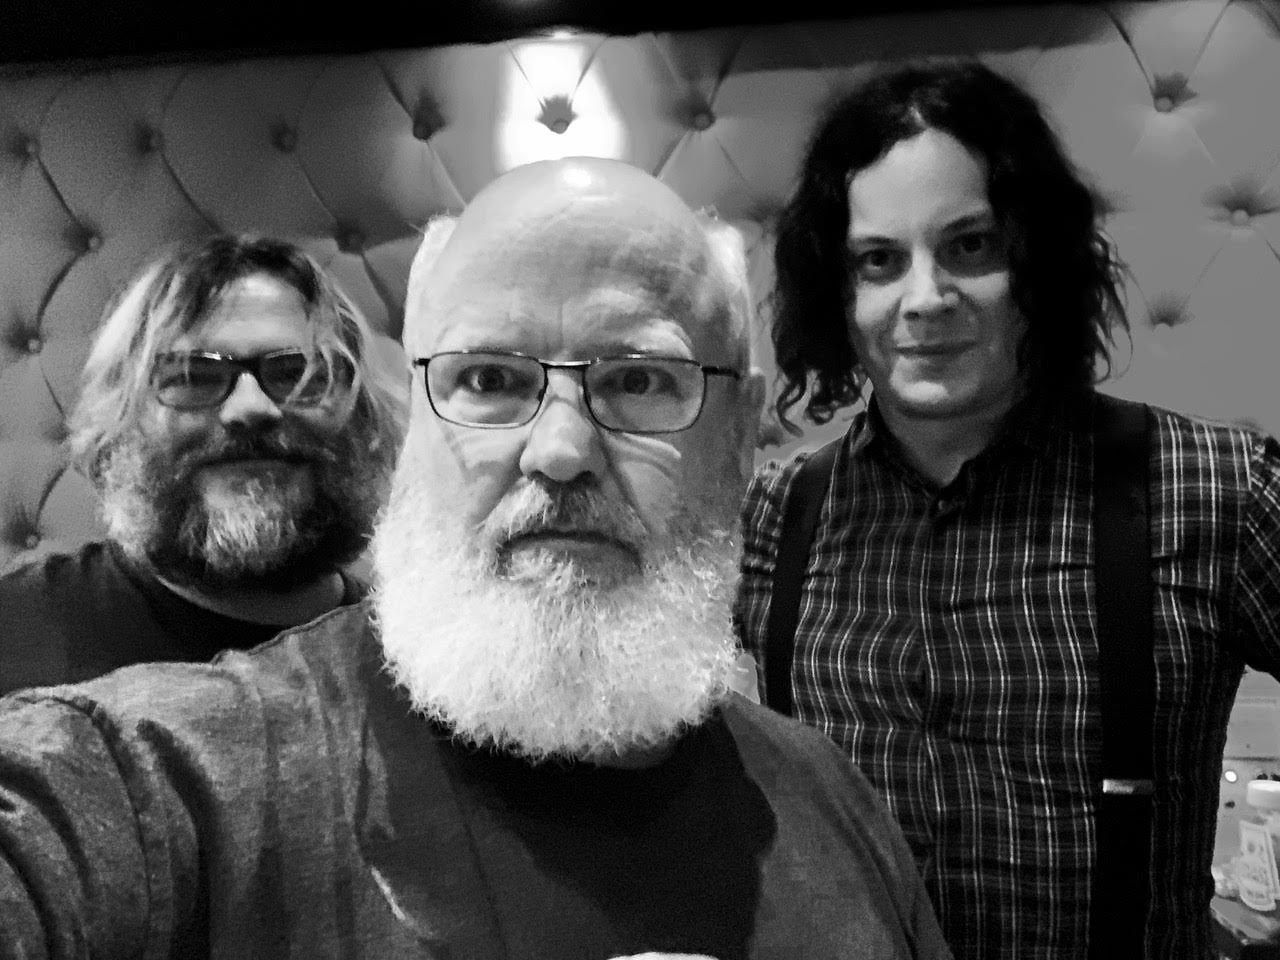 Jack Black & Jack White taking a black and white photo feat. Kyle Gass